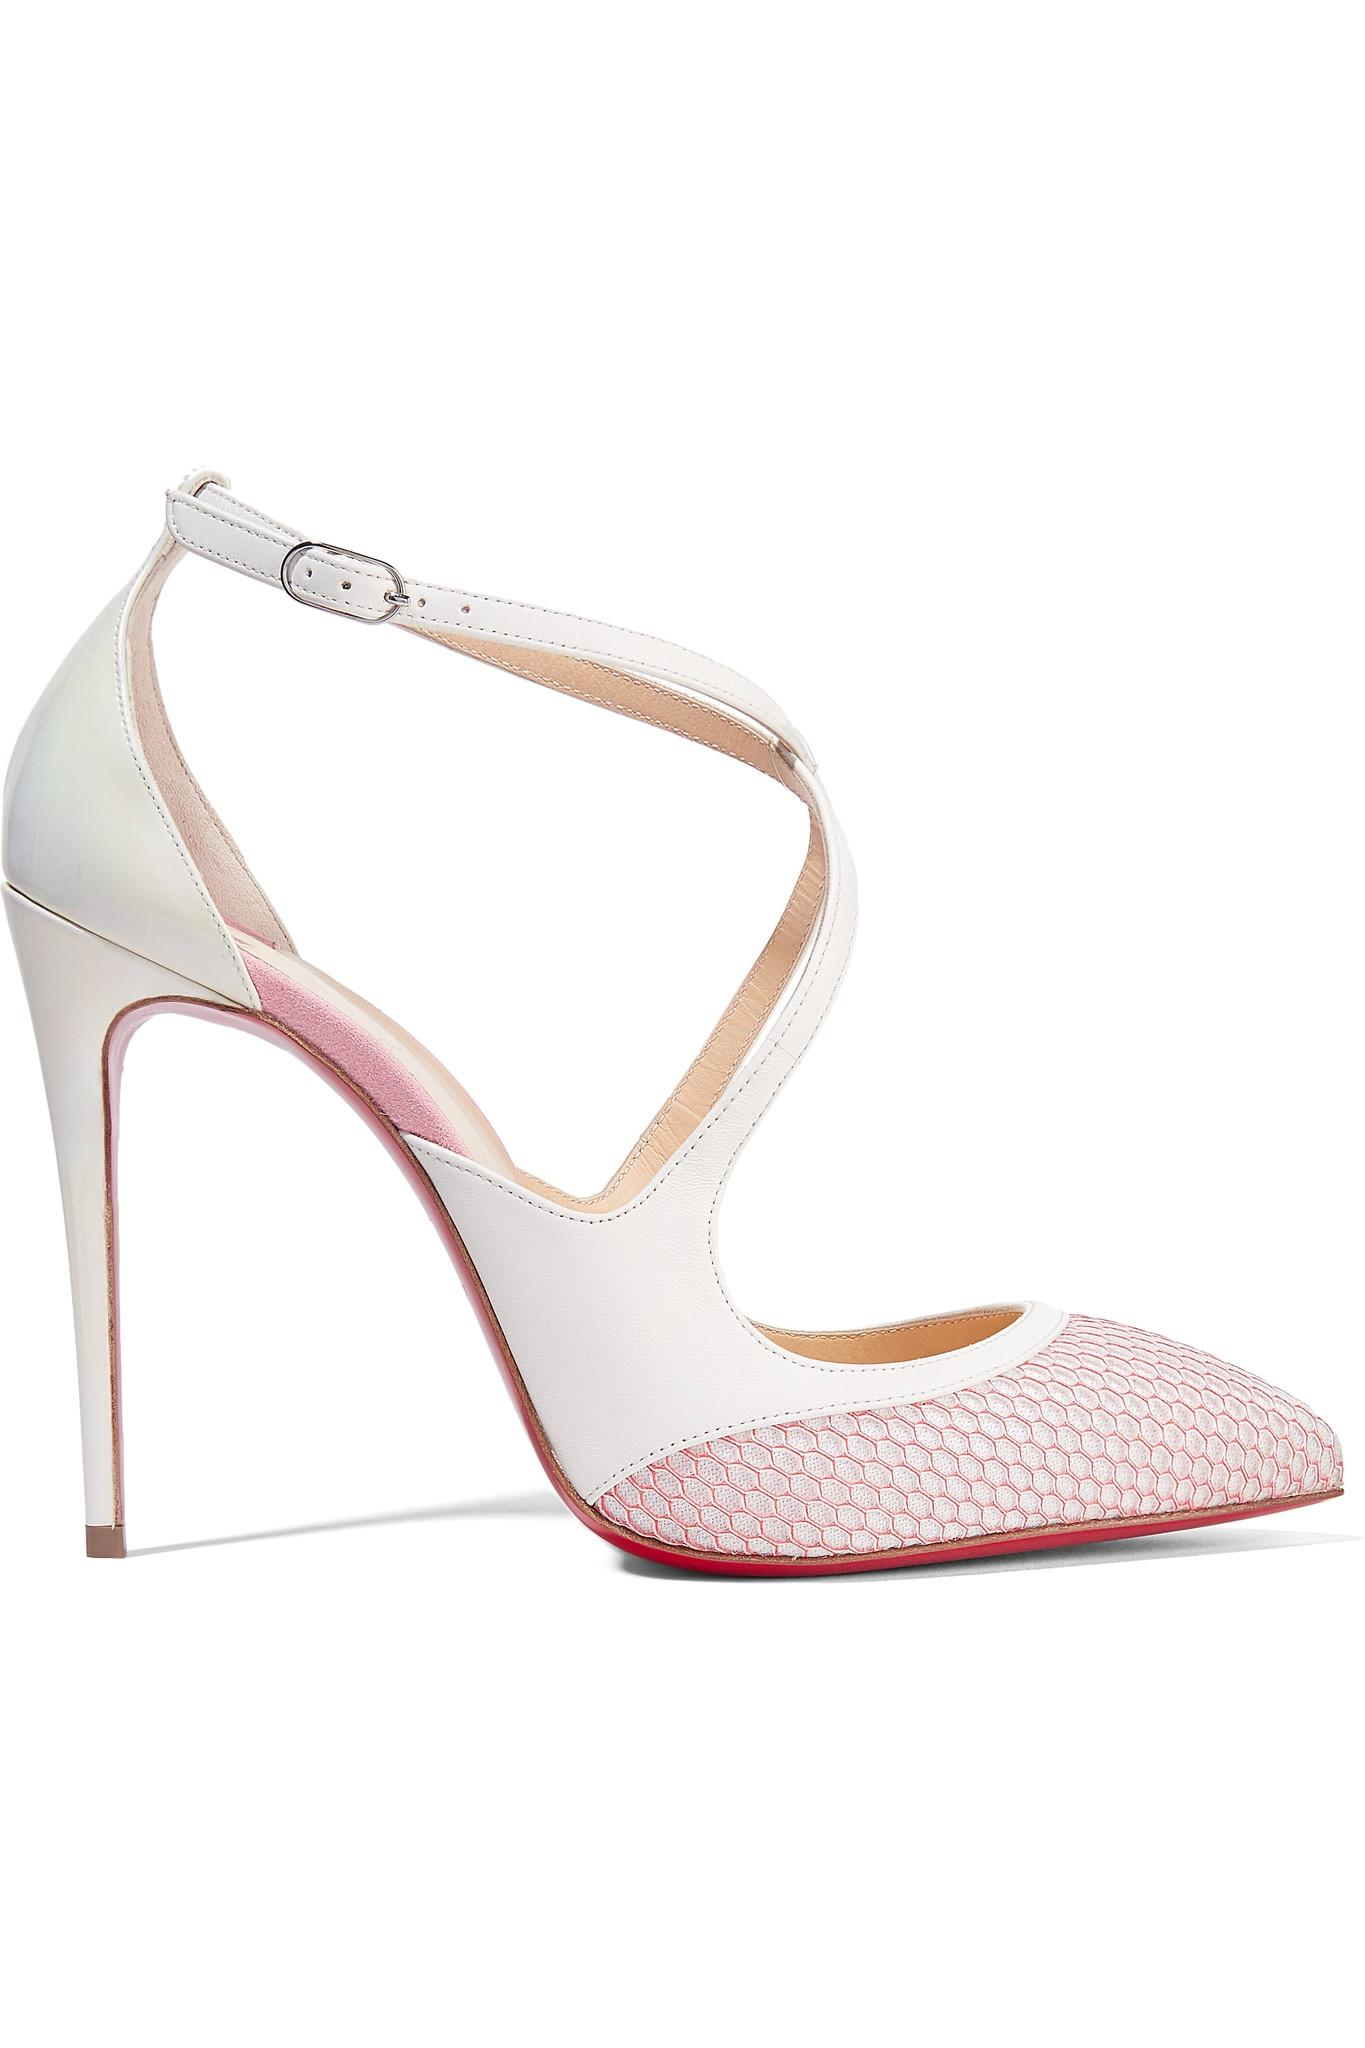 73085ca4cdb7 Lyst - Christian Louboutin Crissos Suede-trimmed Fishnet And Patent ...